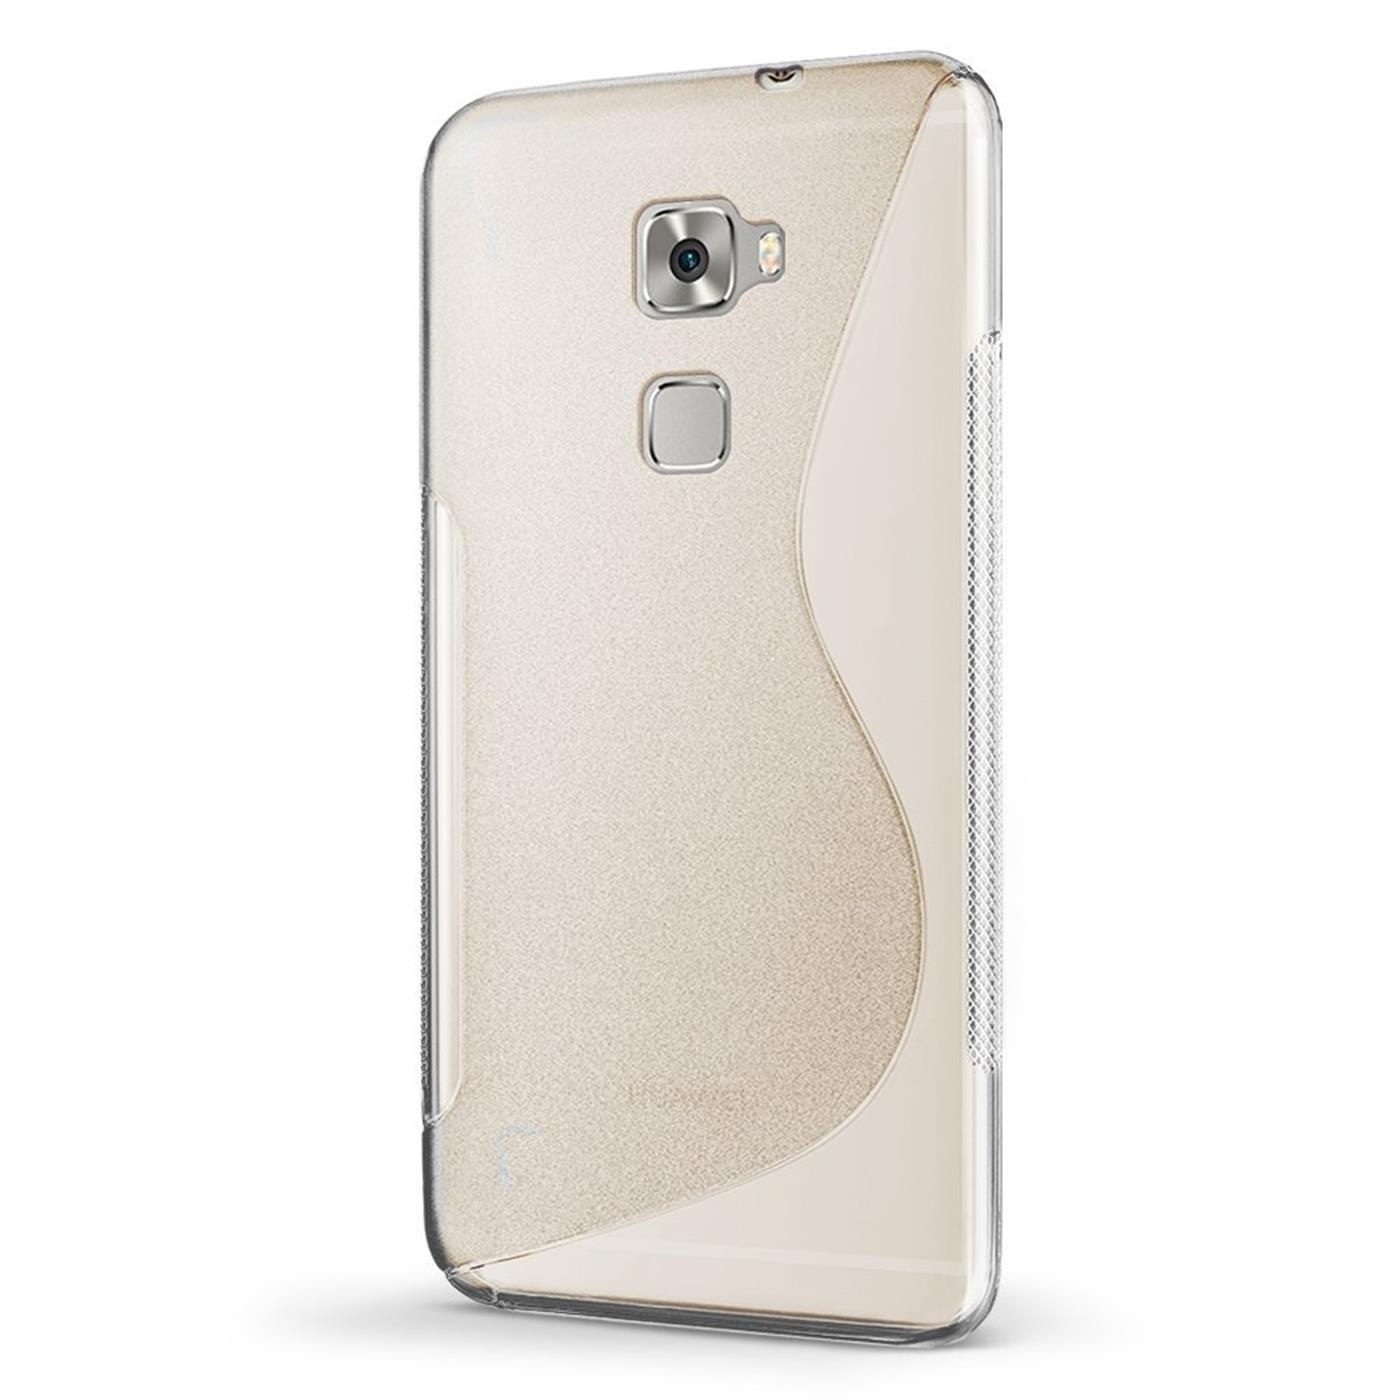 Huawei-Mate-8-Silikon-Gel-S-Line-Case-Cover-Ultra-Thin-Slim-Back-Bumper Indexbild 24